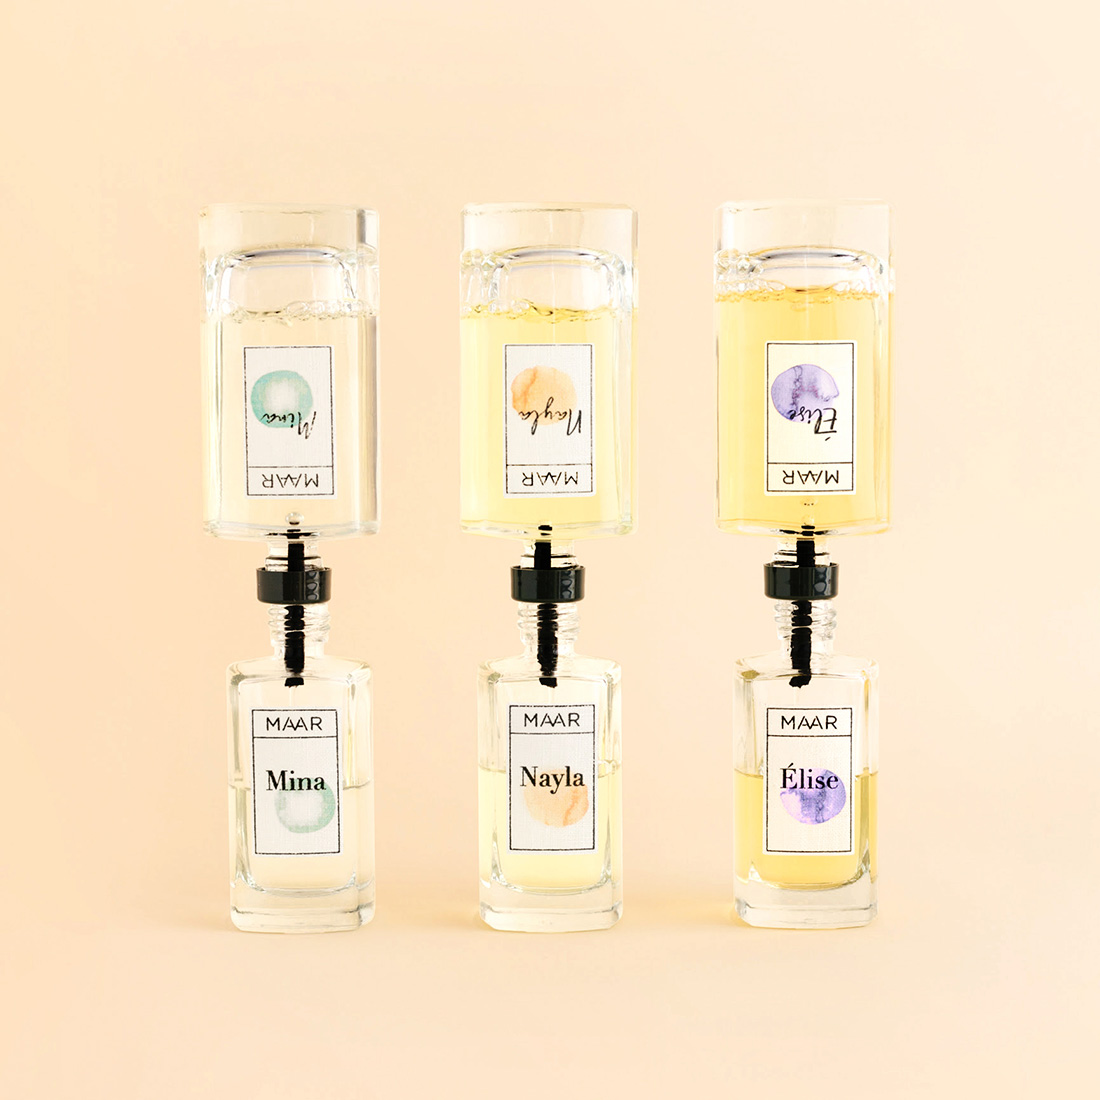 MATIZ Maar Packaging Design Refillable Fragrances